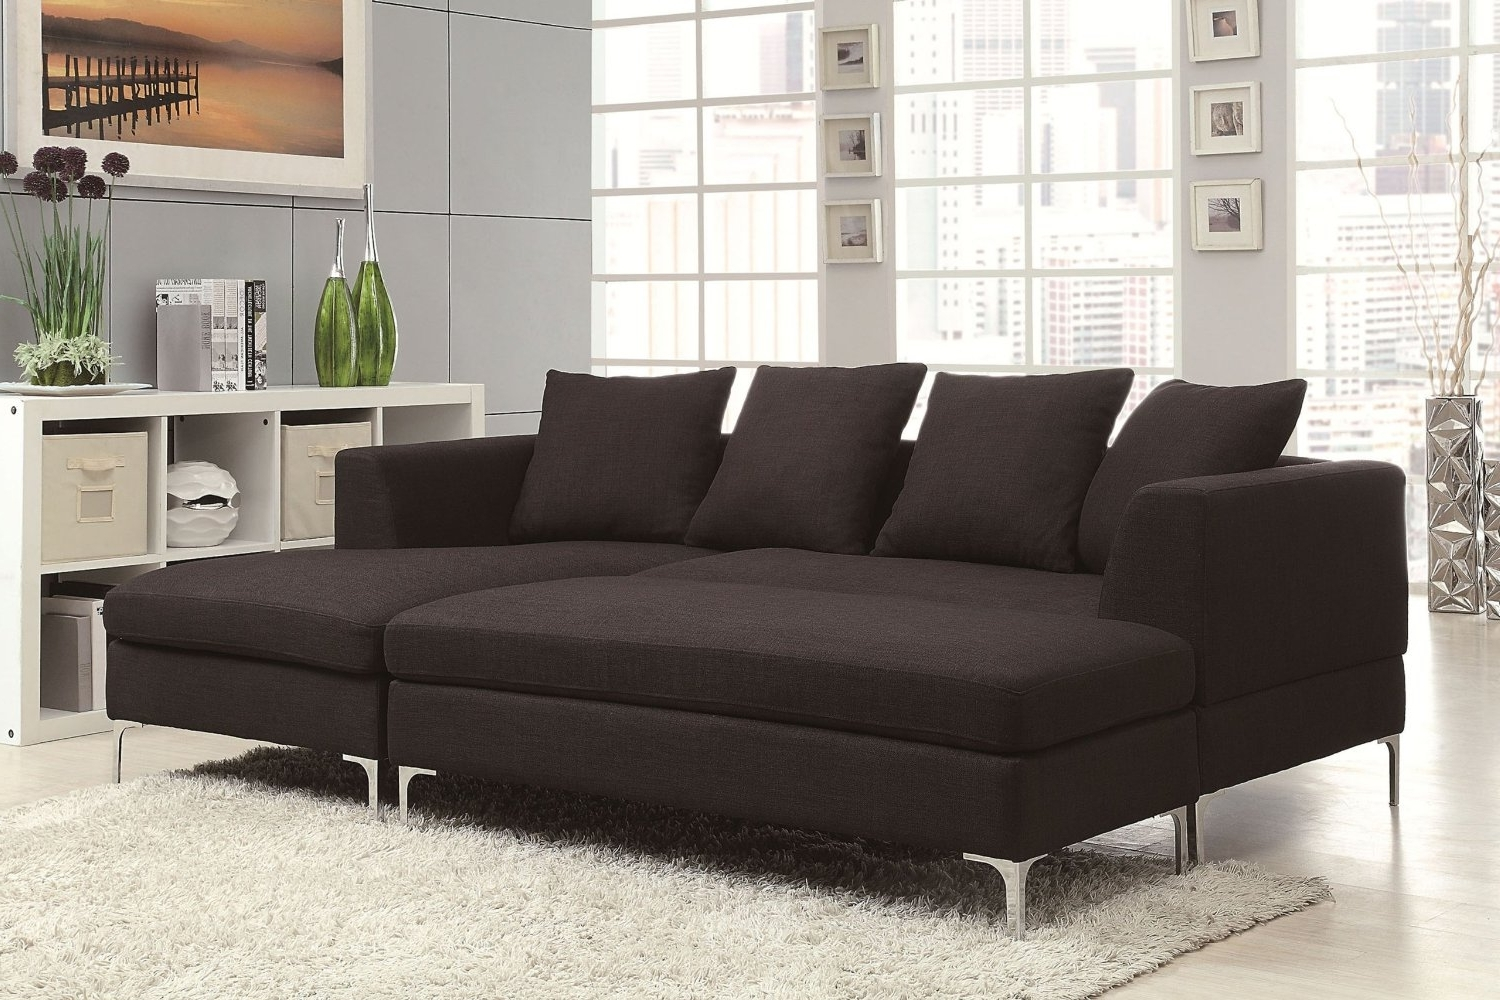 Beautiful Sectional Sofas With Chaise Lounge Gallery – Liltigertoo Inside Well Known Adjustable Sectional Sofas With Queen Bed (View 9 of 20)